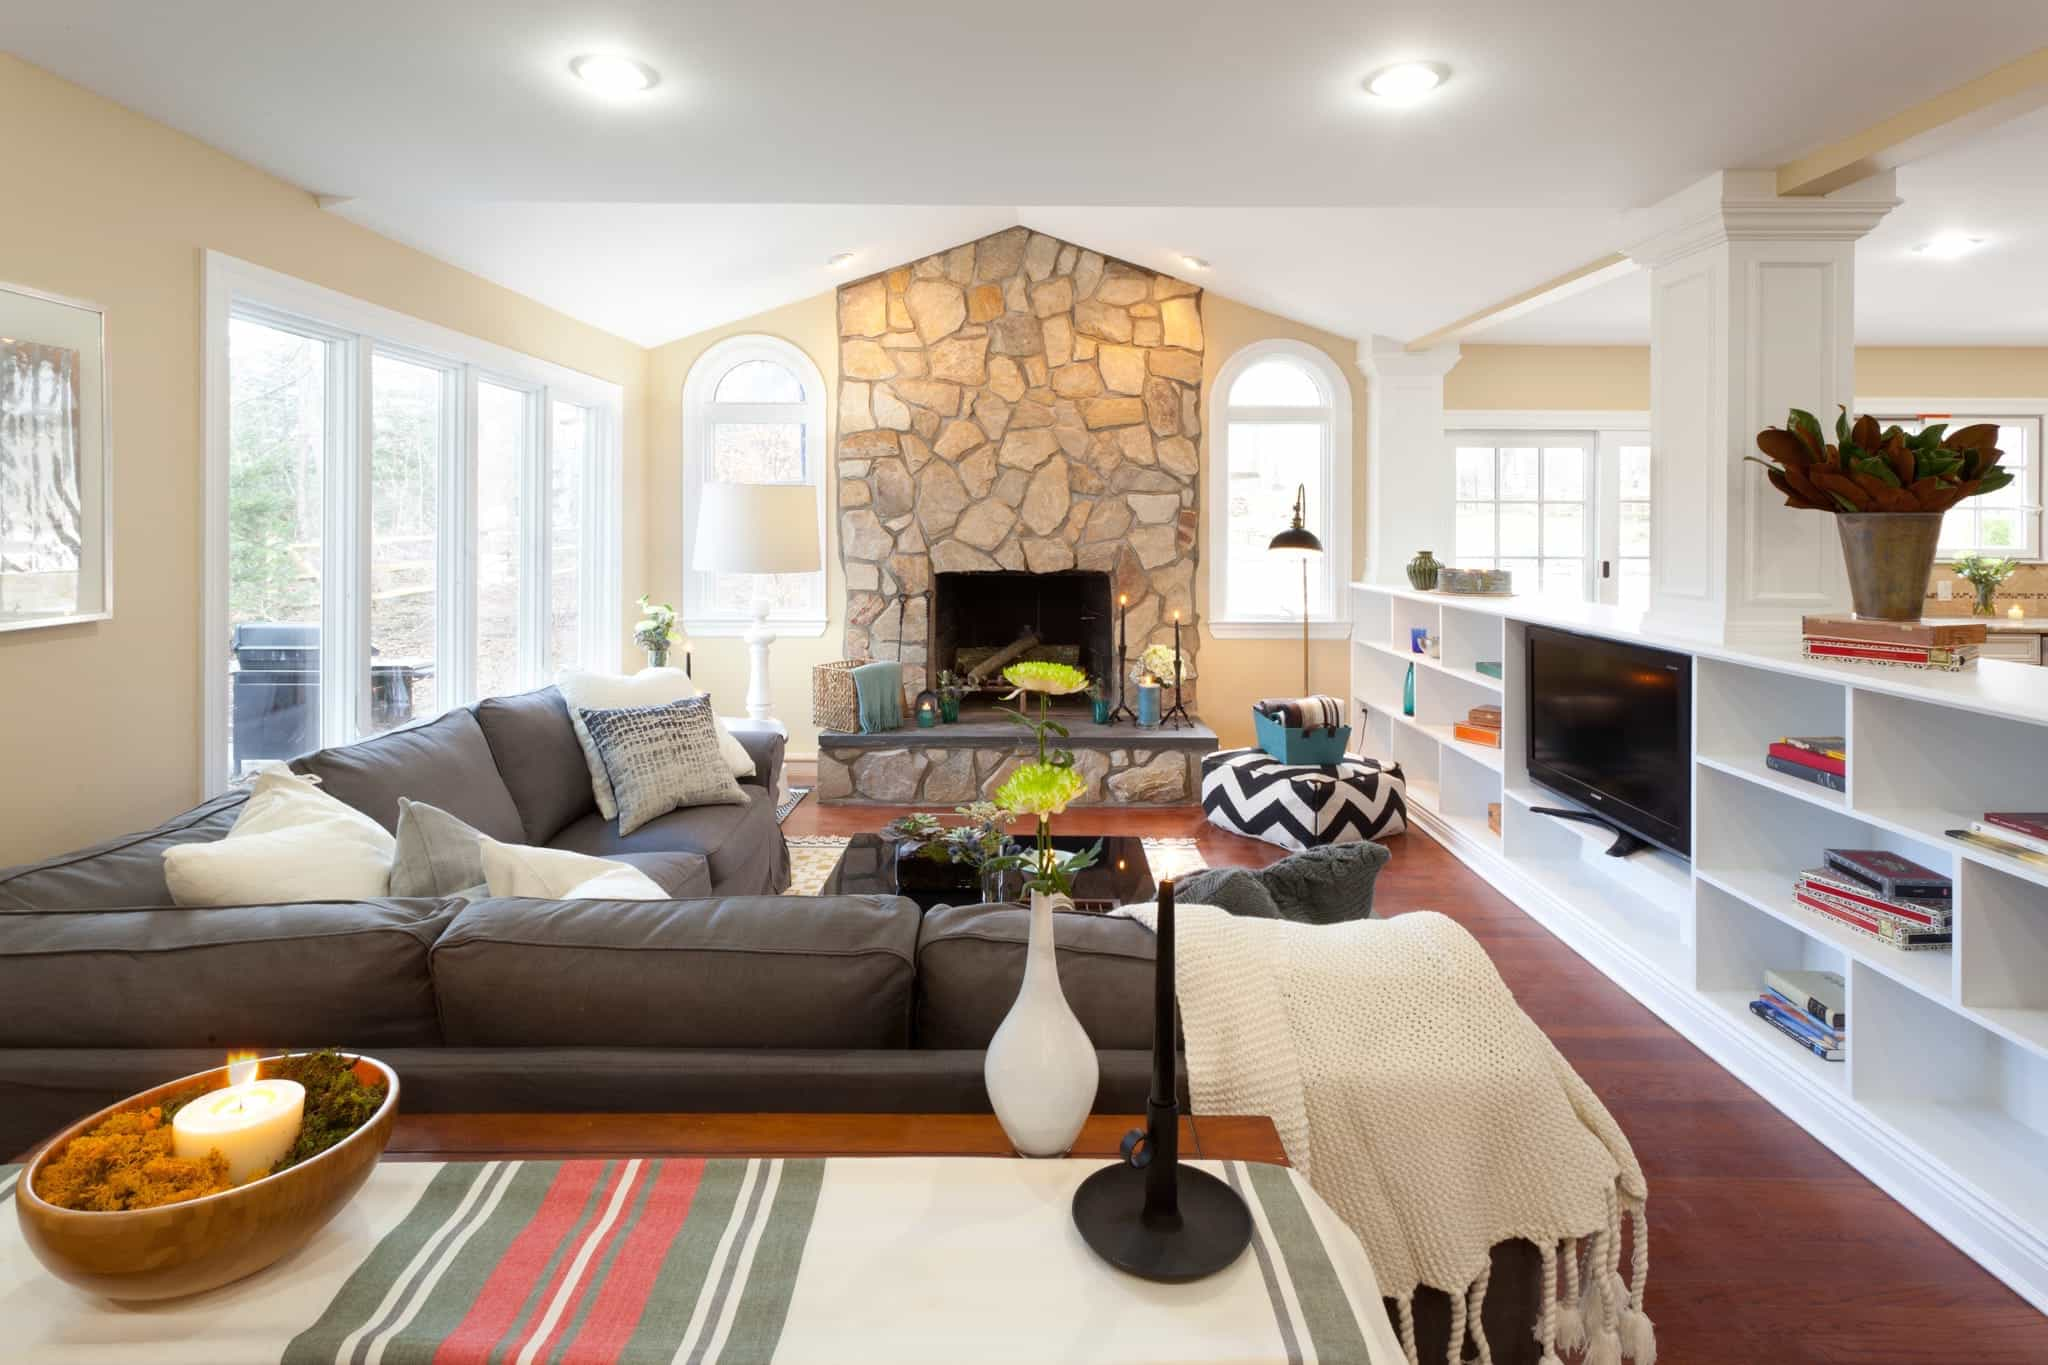 Pottery Barn Inspired Living Room With Bright Warm Accents (Image 10 of 15)